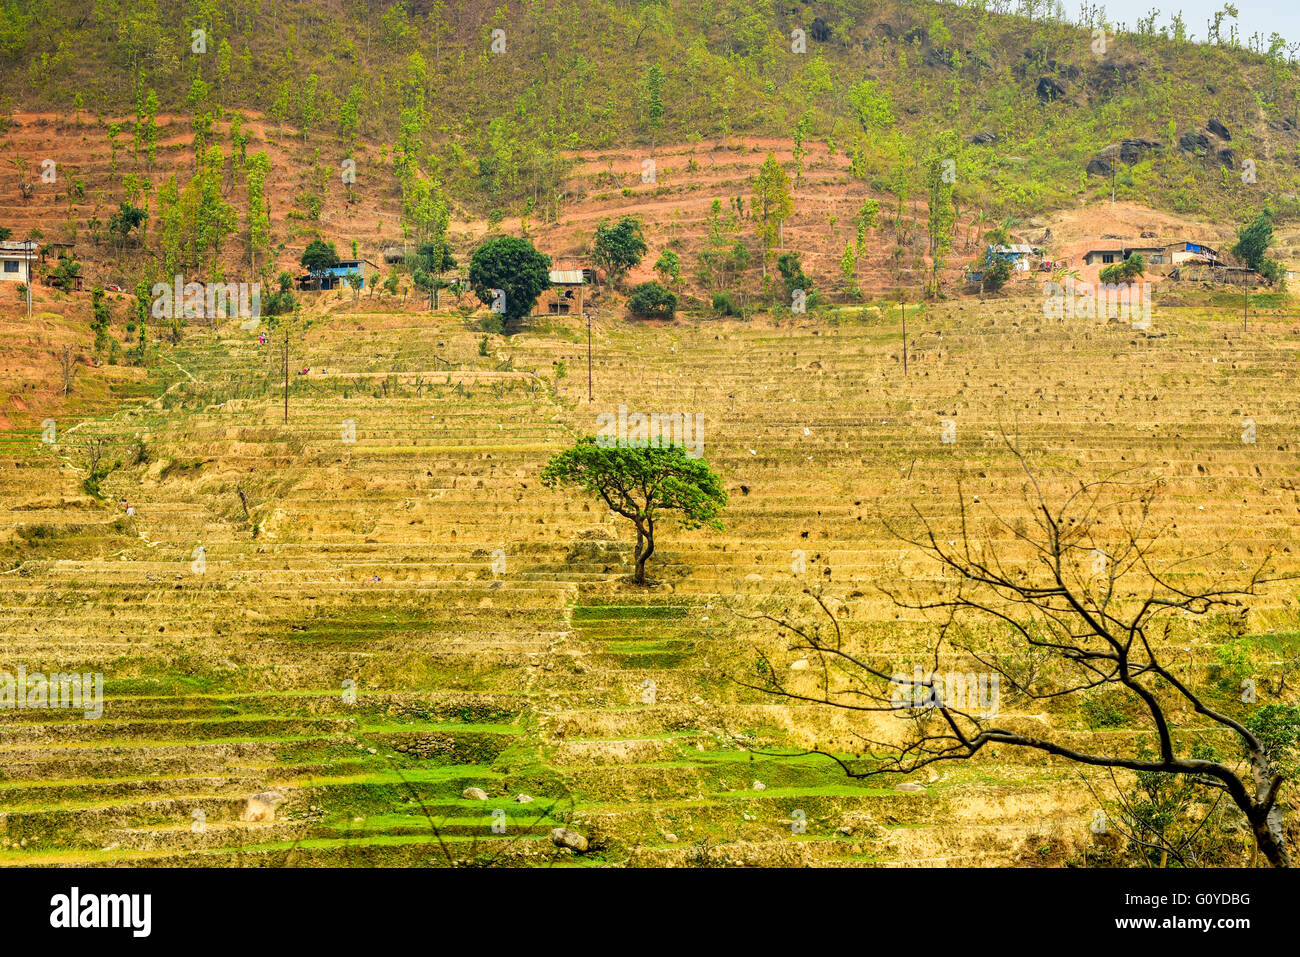 View of agricultural terraces during dry season in rural Gorkha, Nepal. - Stock Image